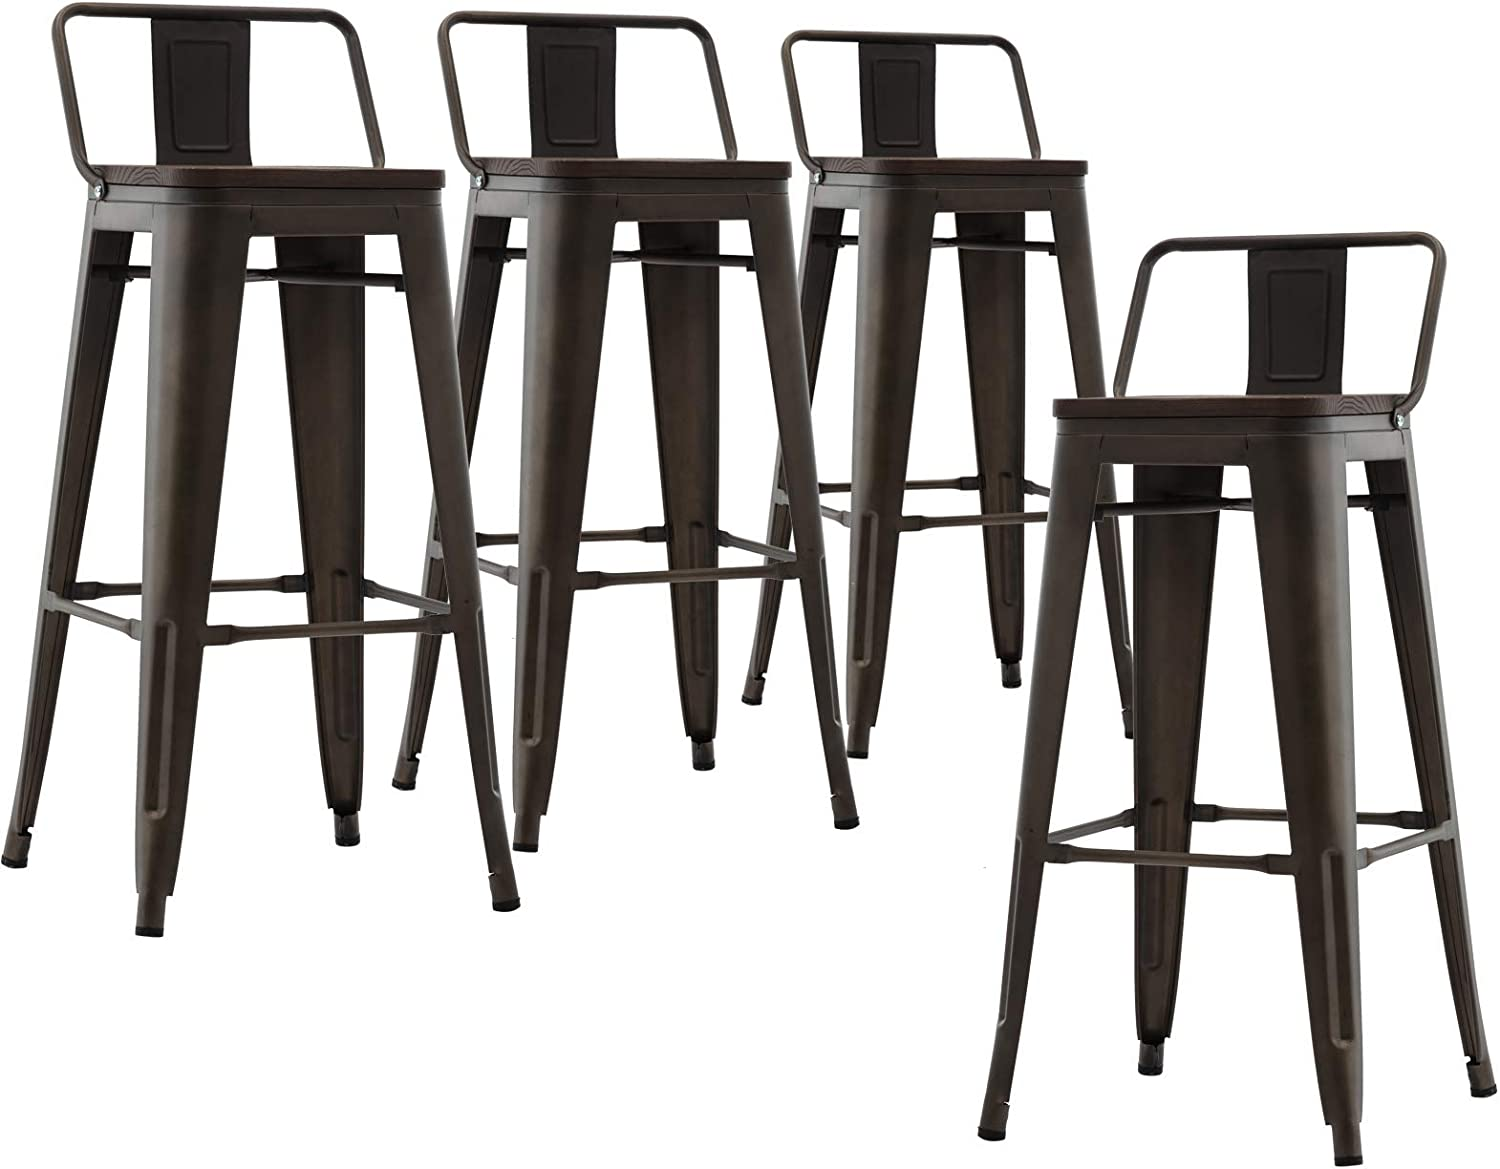 CIMOTA Metal Bar Stools 30 inches with Low Back Industrial Barstools Patio Bar Chair Cafe Side Stool for Kitchen Indoor Outdoor (Matte Gun, Set of 4)